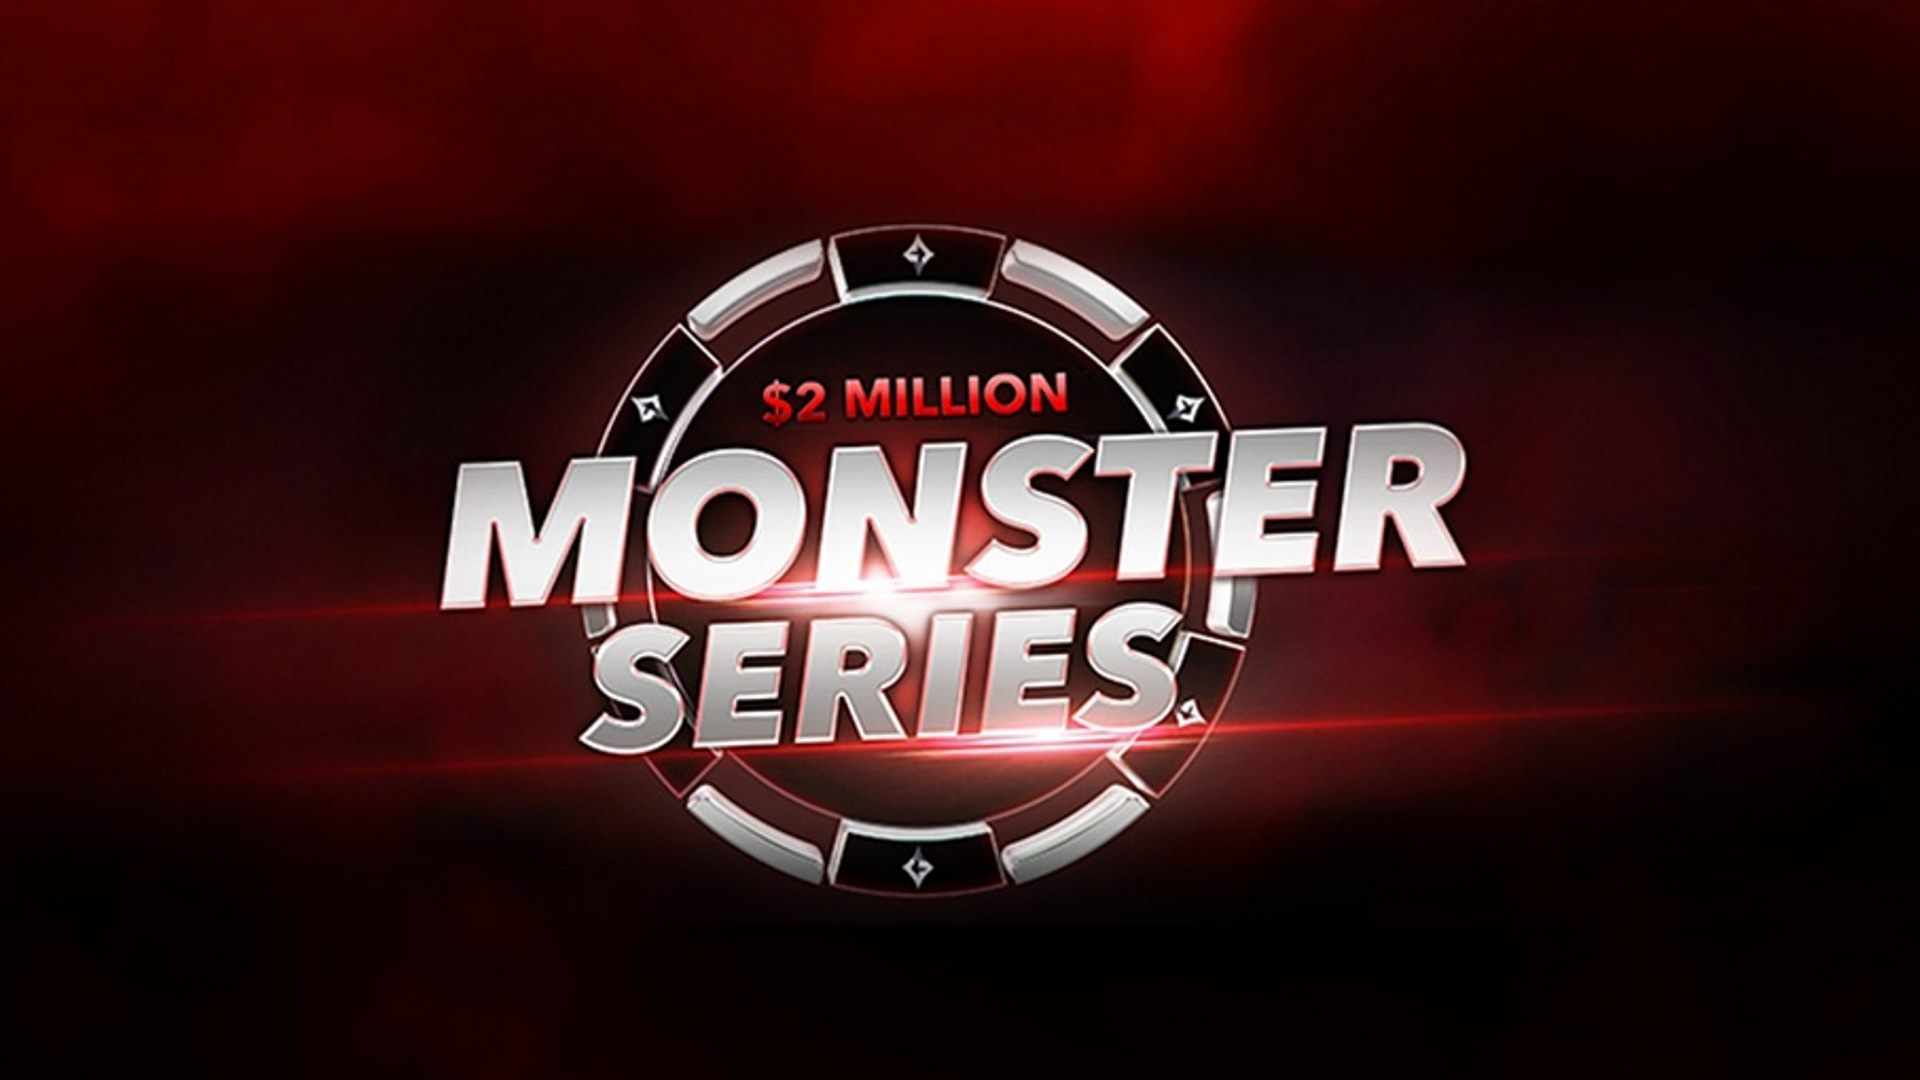 The Monster Series is back again!